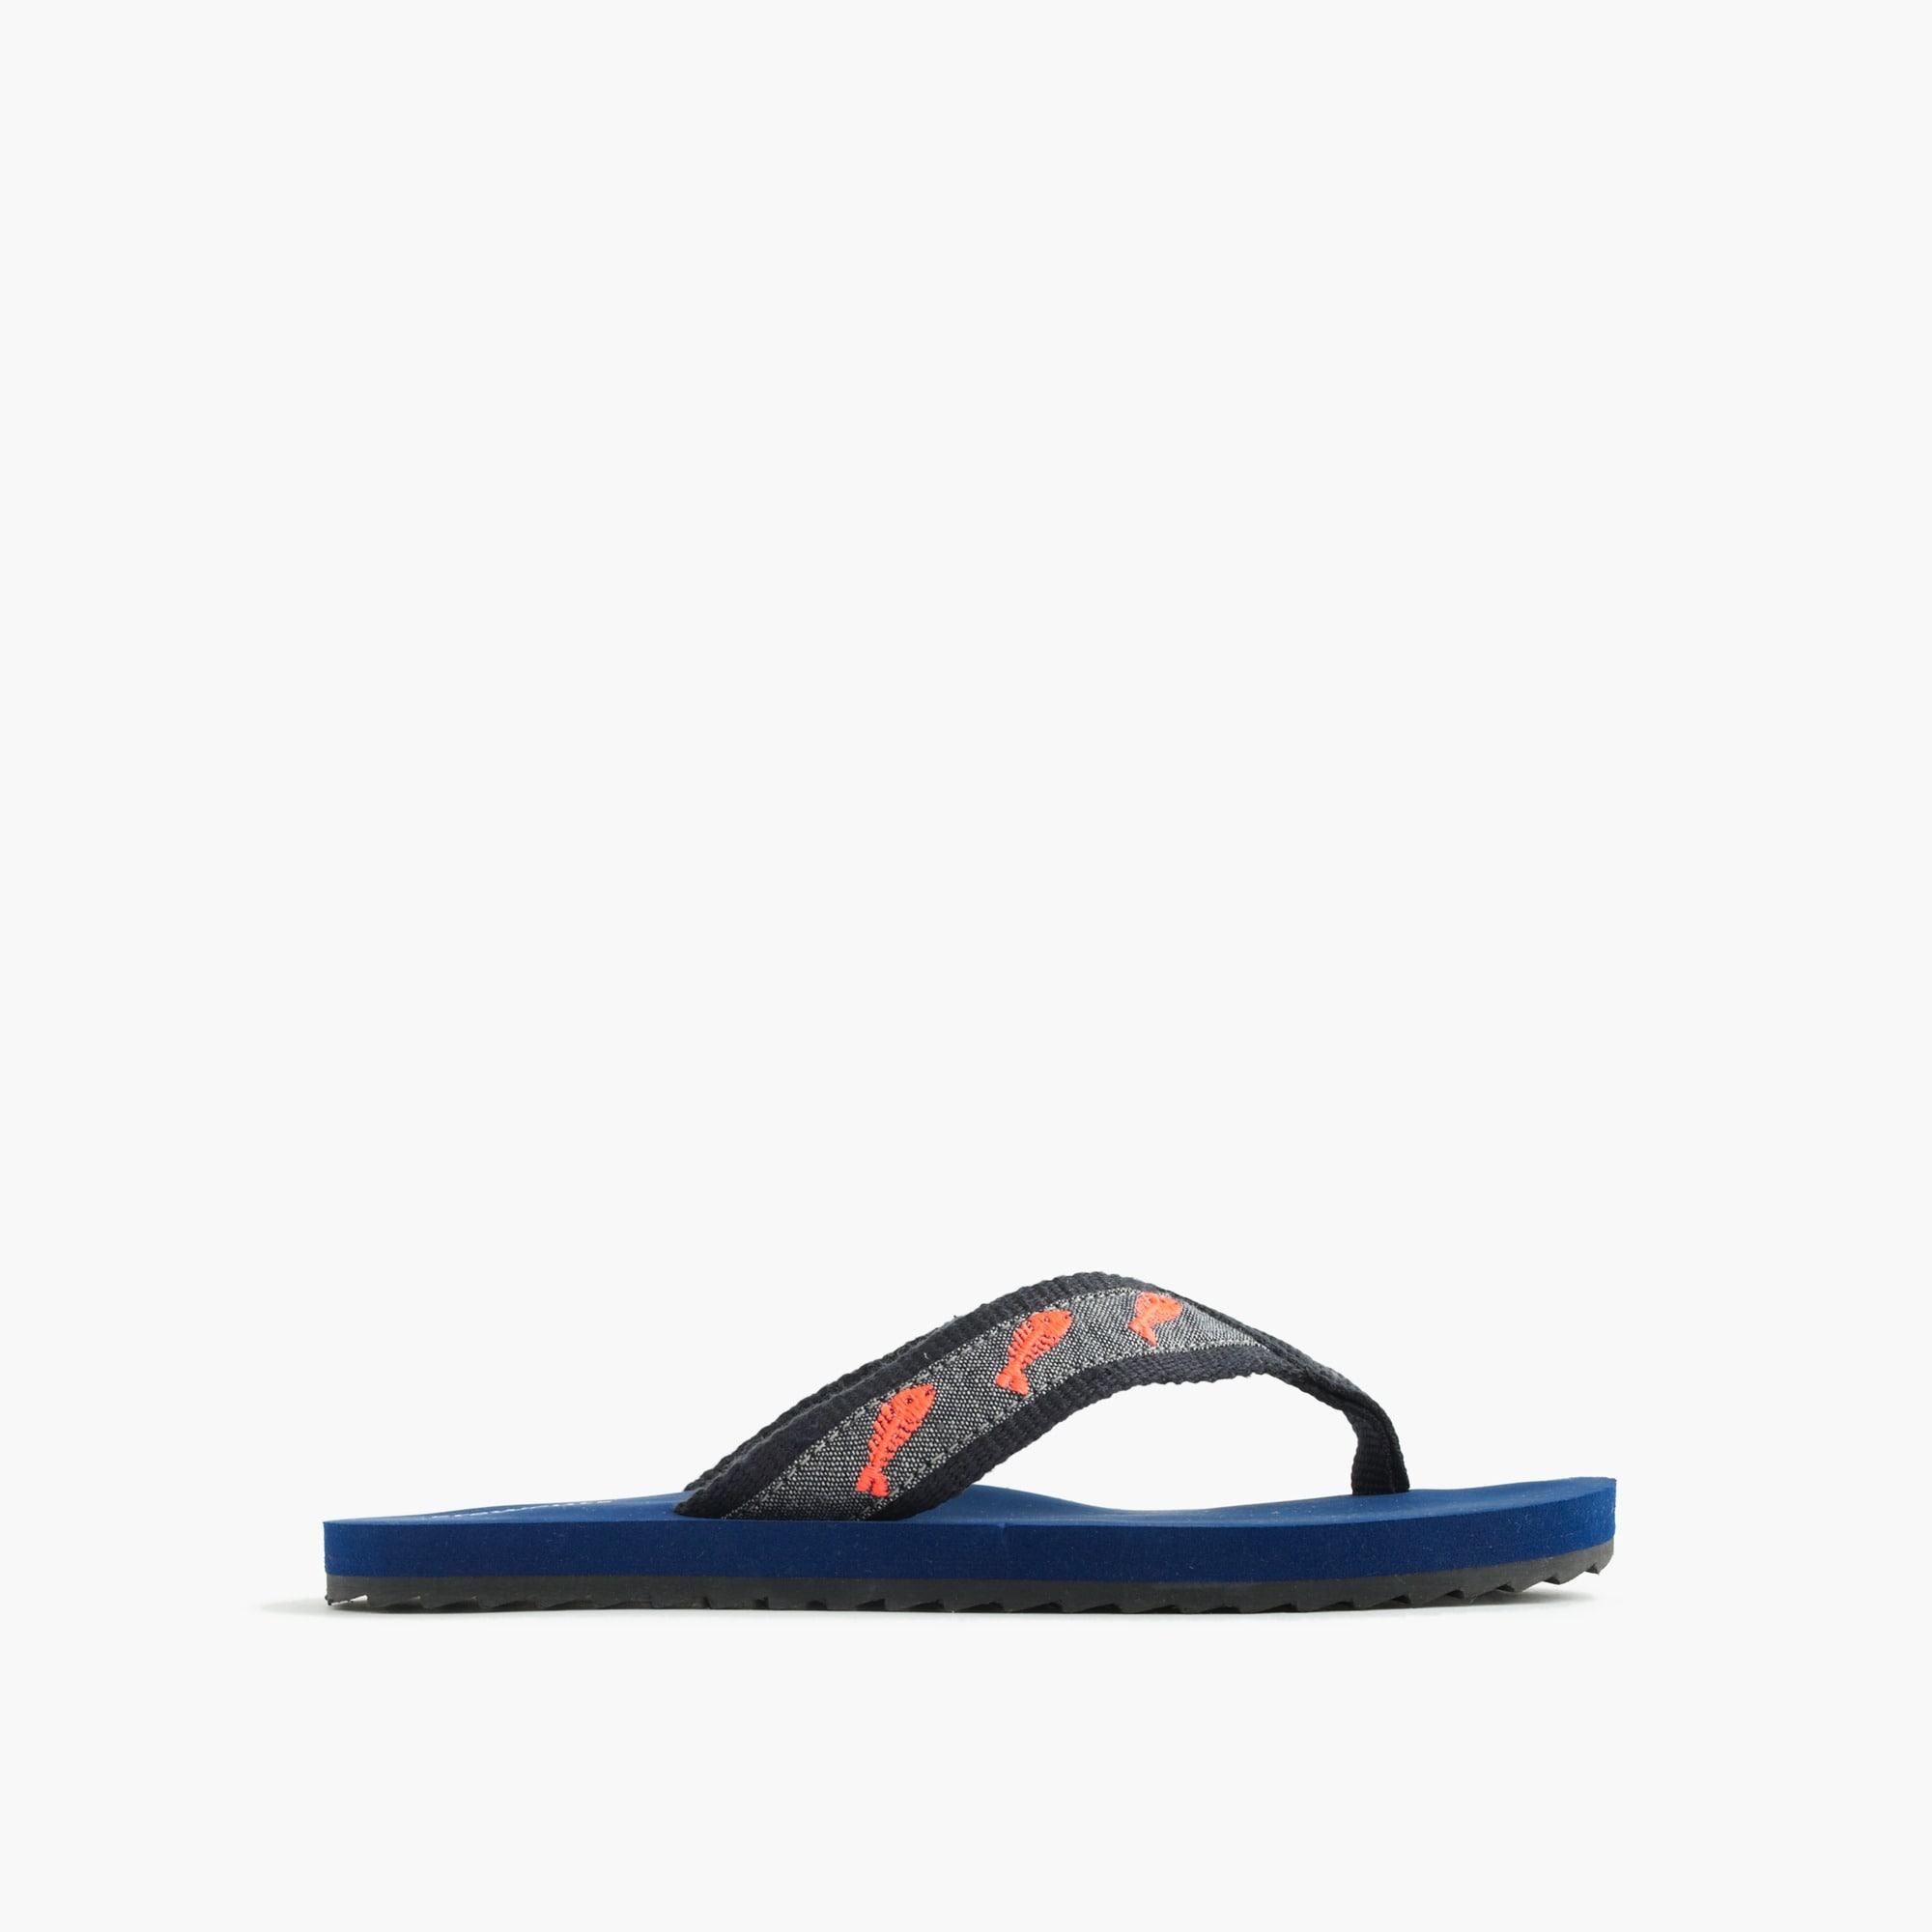 Image 1 for Boys' fish critter flip-flops